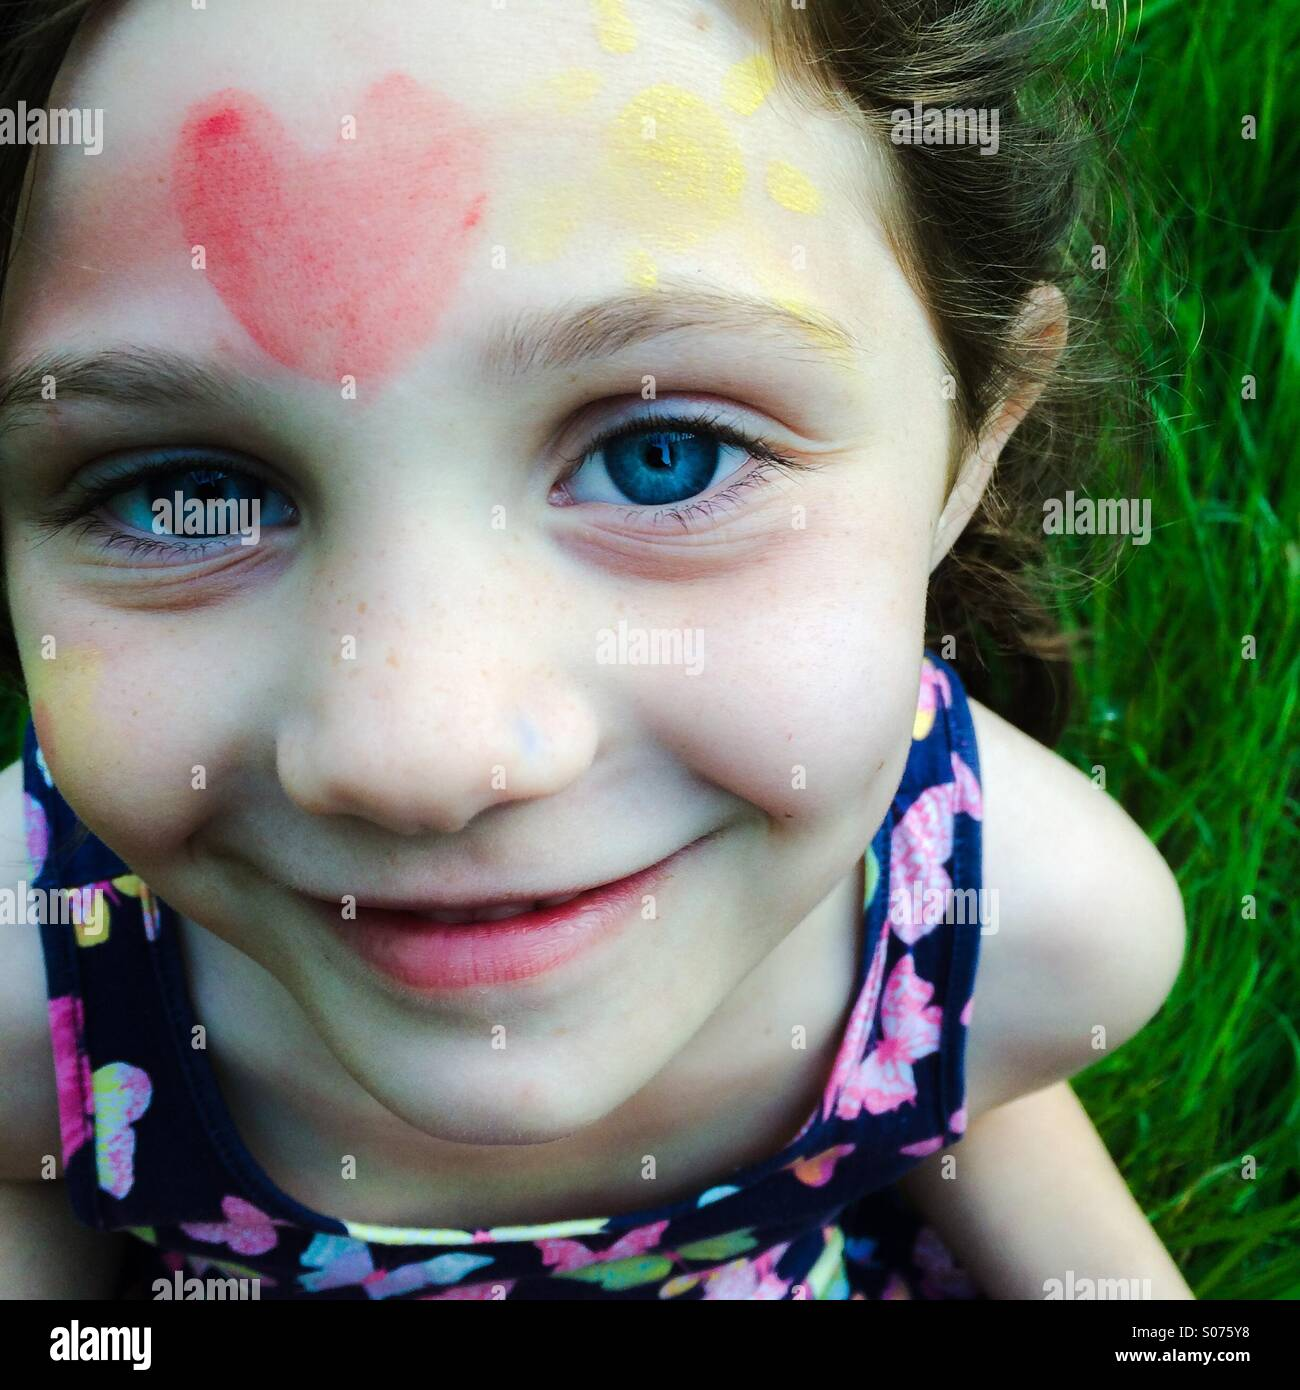 5 year old girl with face painting - Stock Image